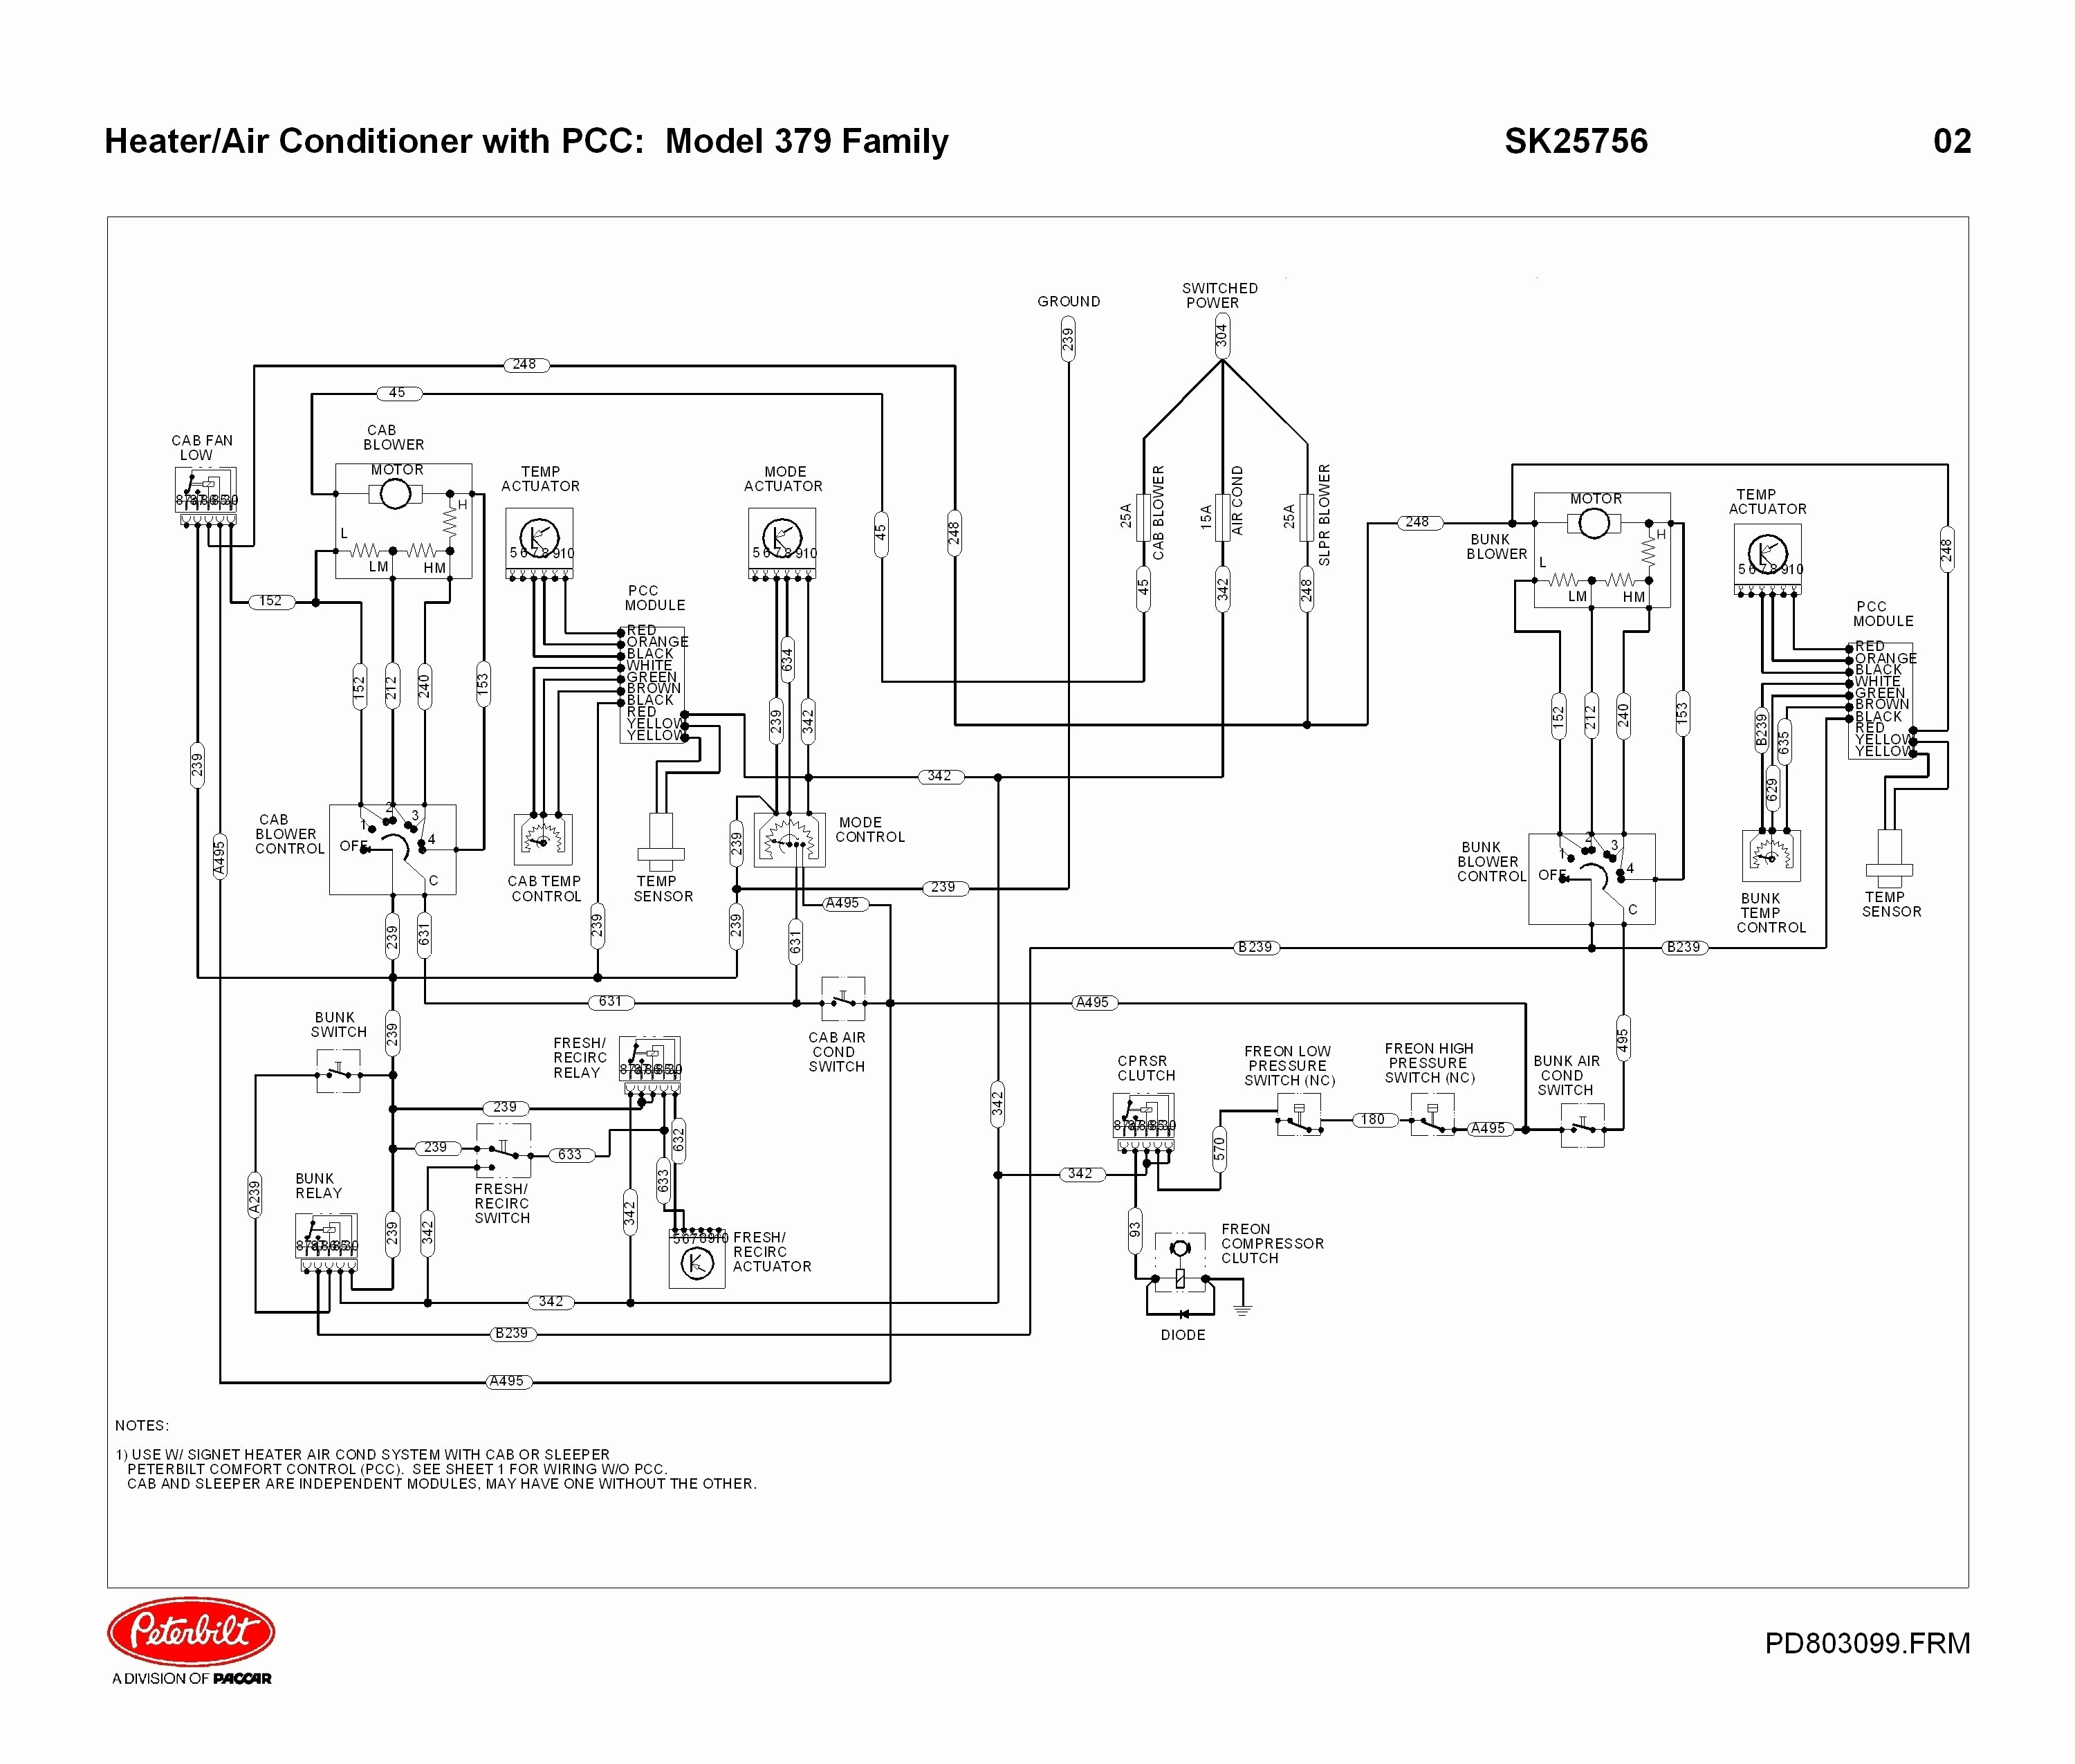 DIAGRAM] 2004 Peterbilt Wiring Diagram FULL Version HD Quality Wiring  Diagram - THEARCHITECTUREDIAGRAM.POTROSUAEMFC.MX | 2004 379 Peterbilt Wiring Diagram |  | potros uaem fc